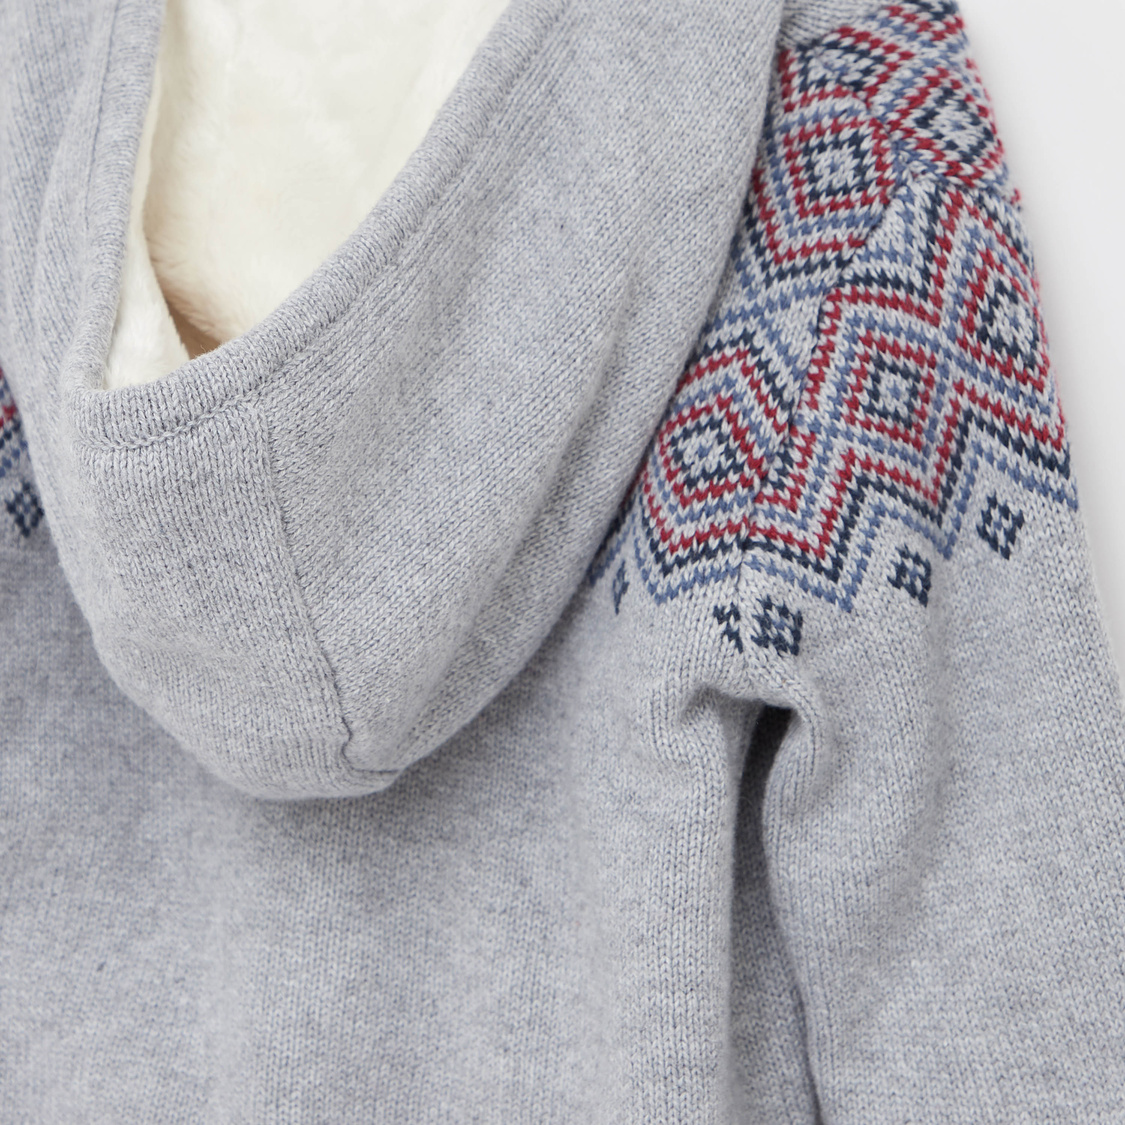 Printed Jacket with Hooded Neck and Zip Closure